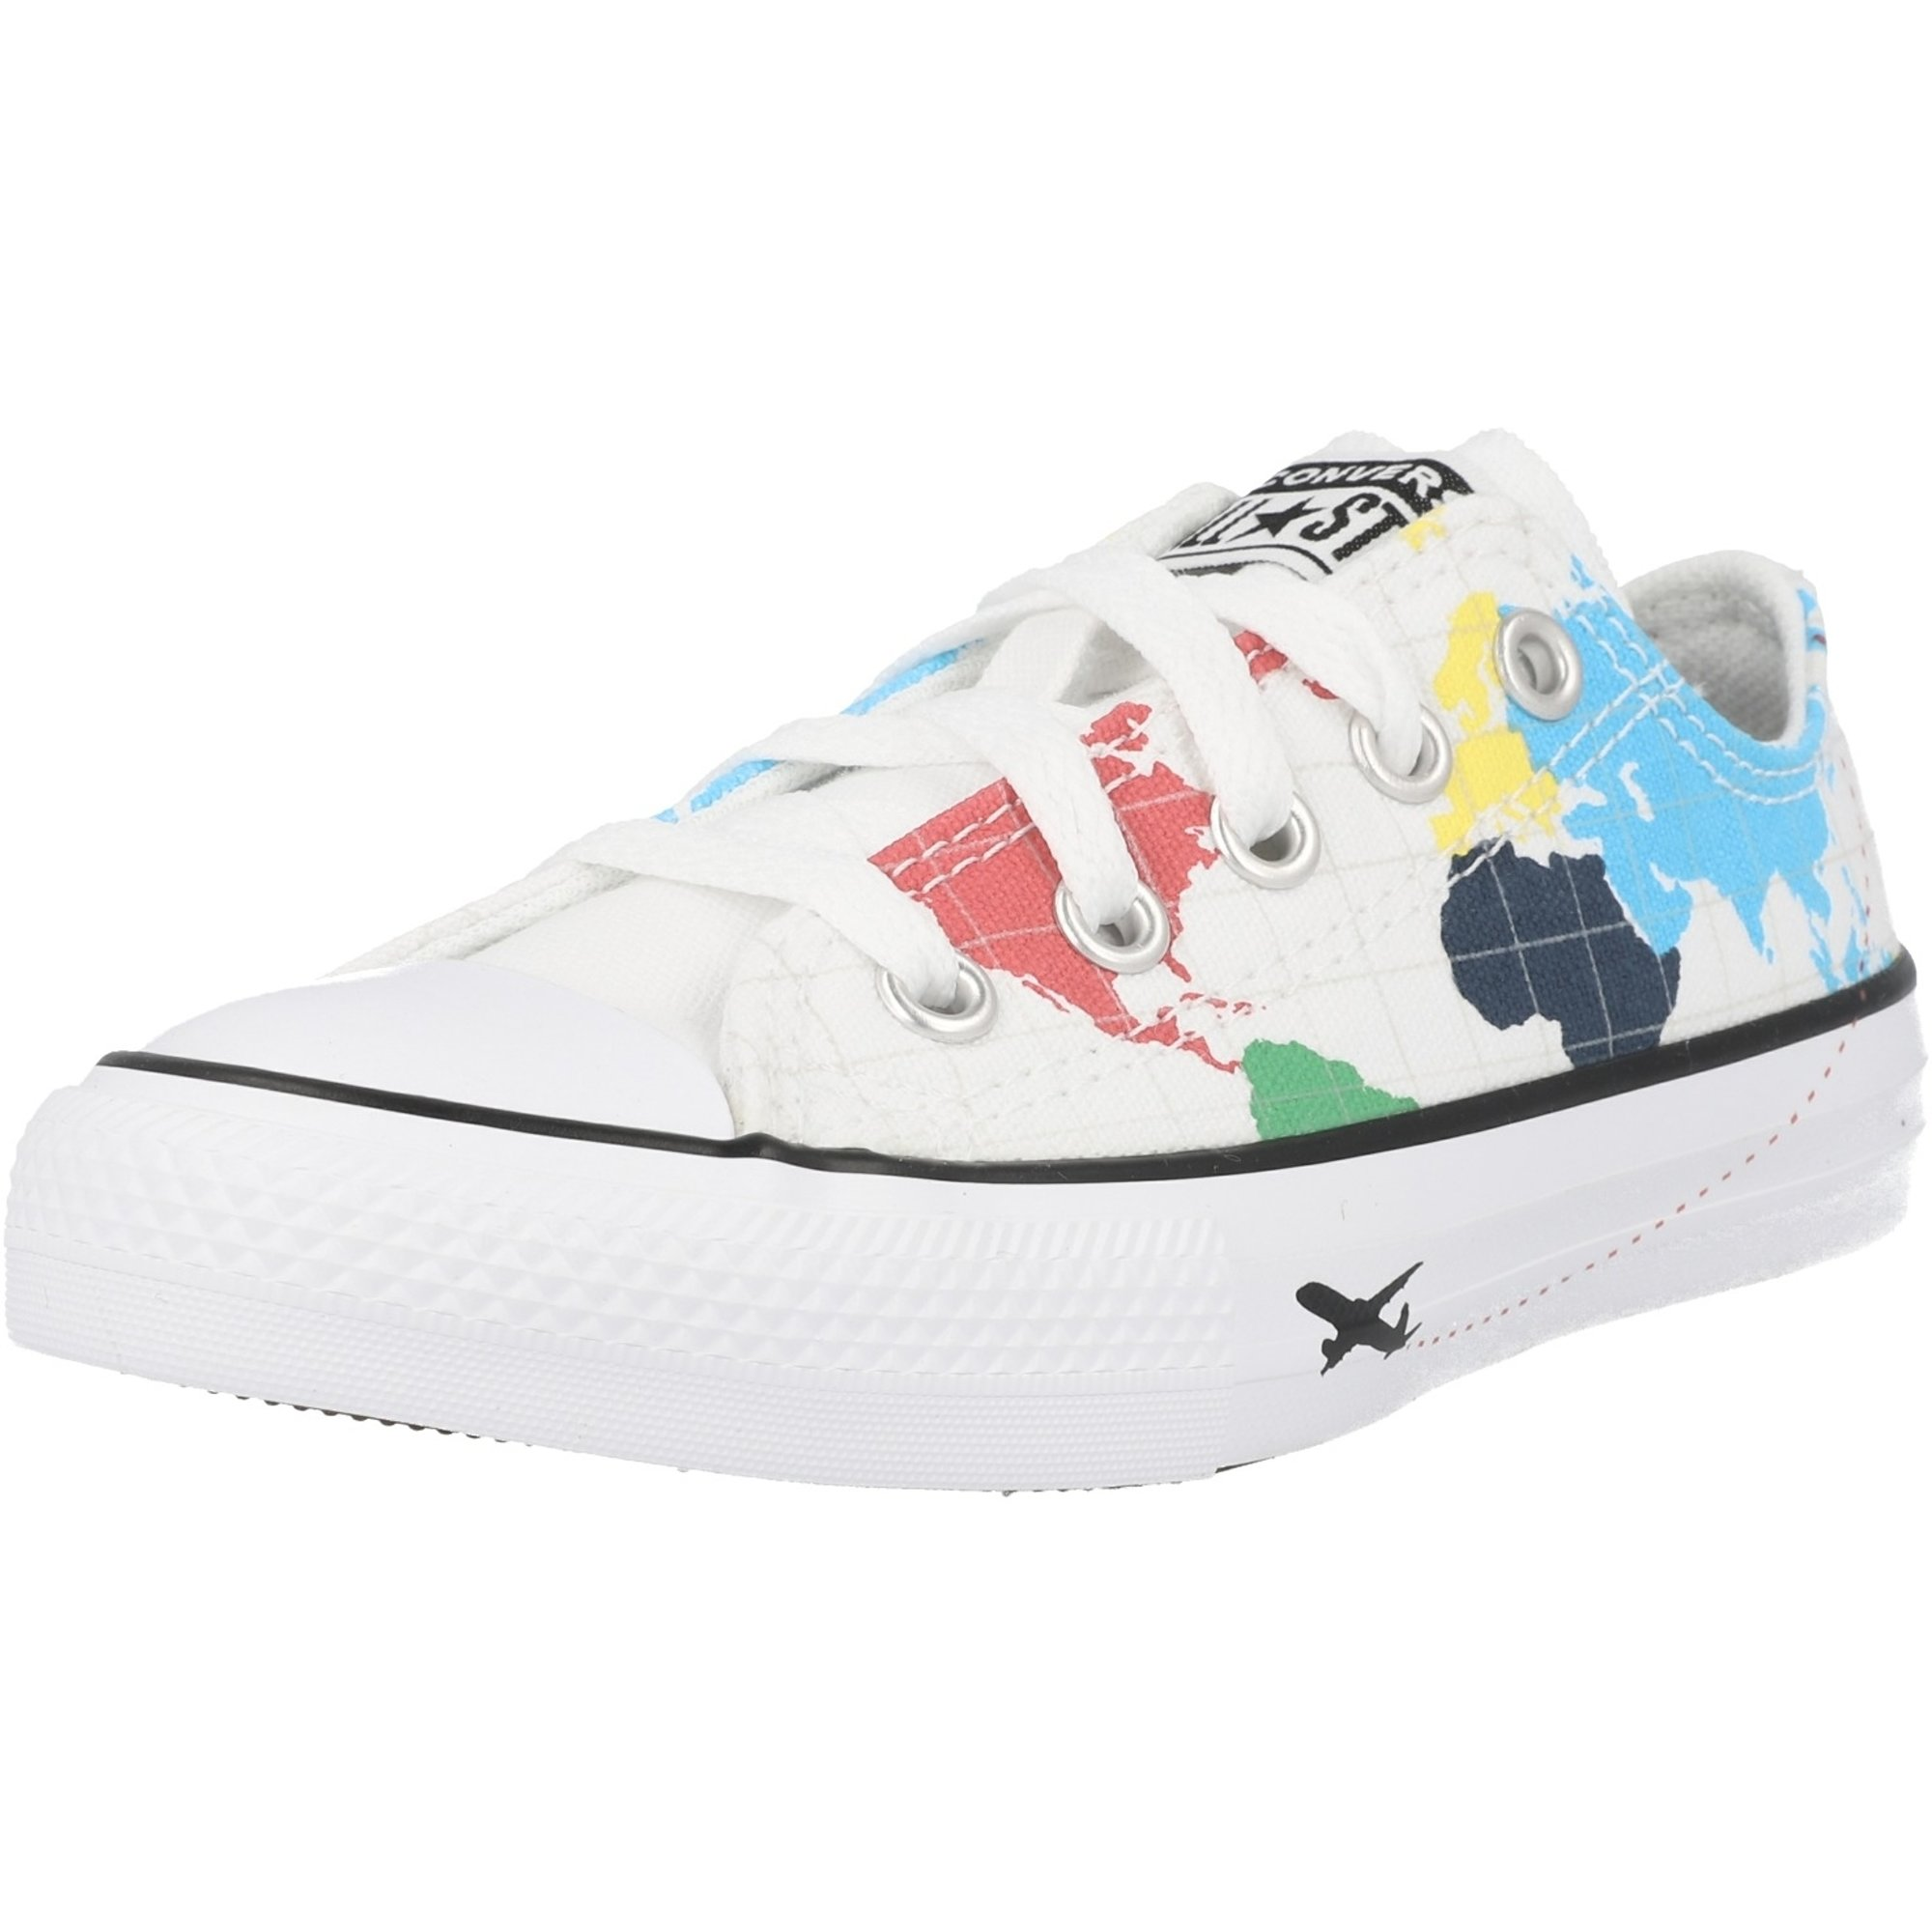 Converse Chuck Taylor All Star Geography Class Ox White/Black Canvas